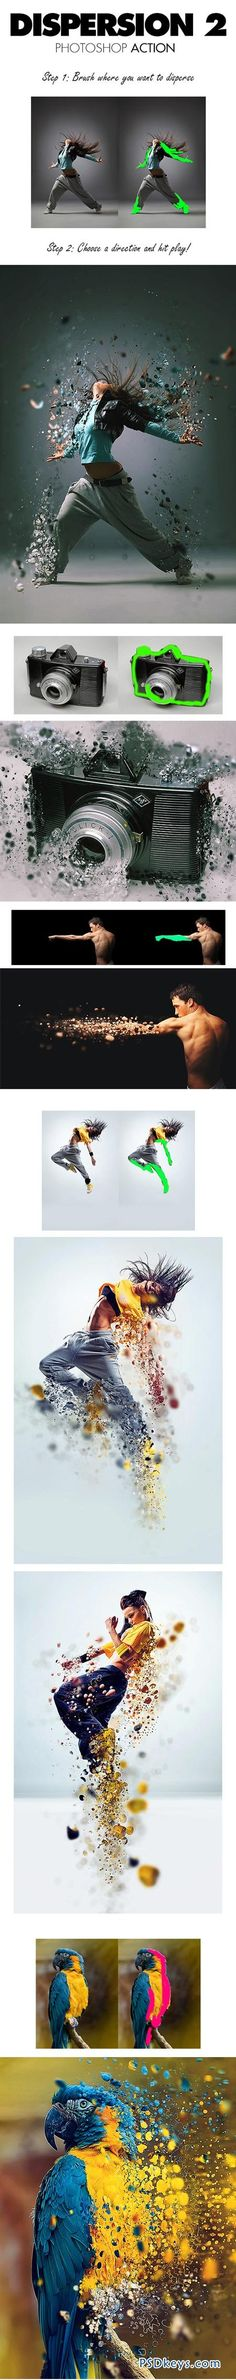 Dispersion 2 Photoshop Action #PhotoshopAction #Photoshop